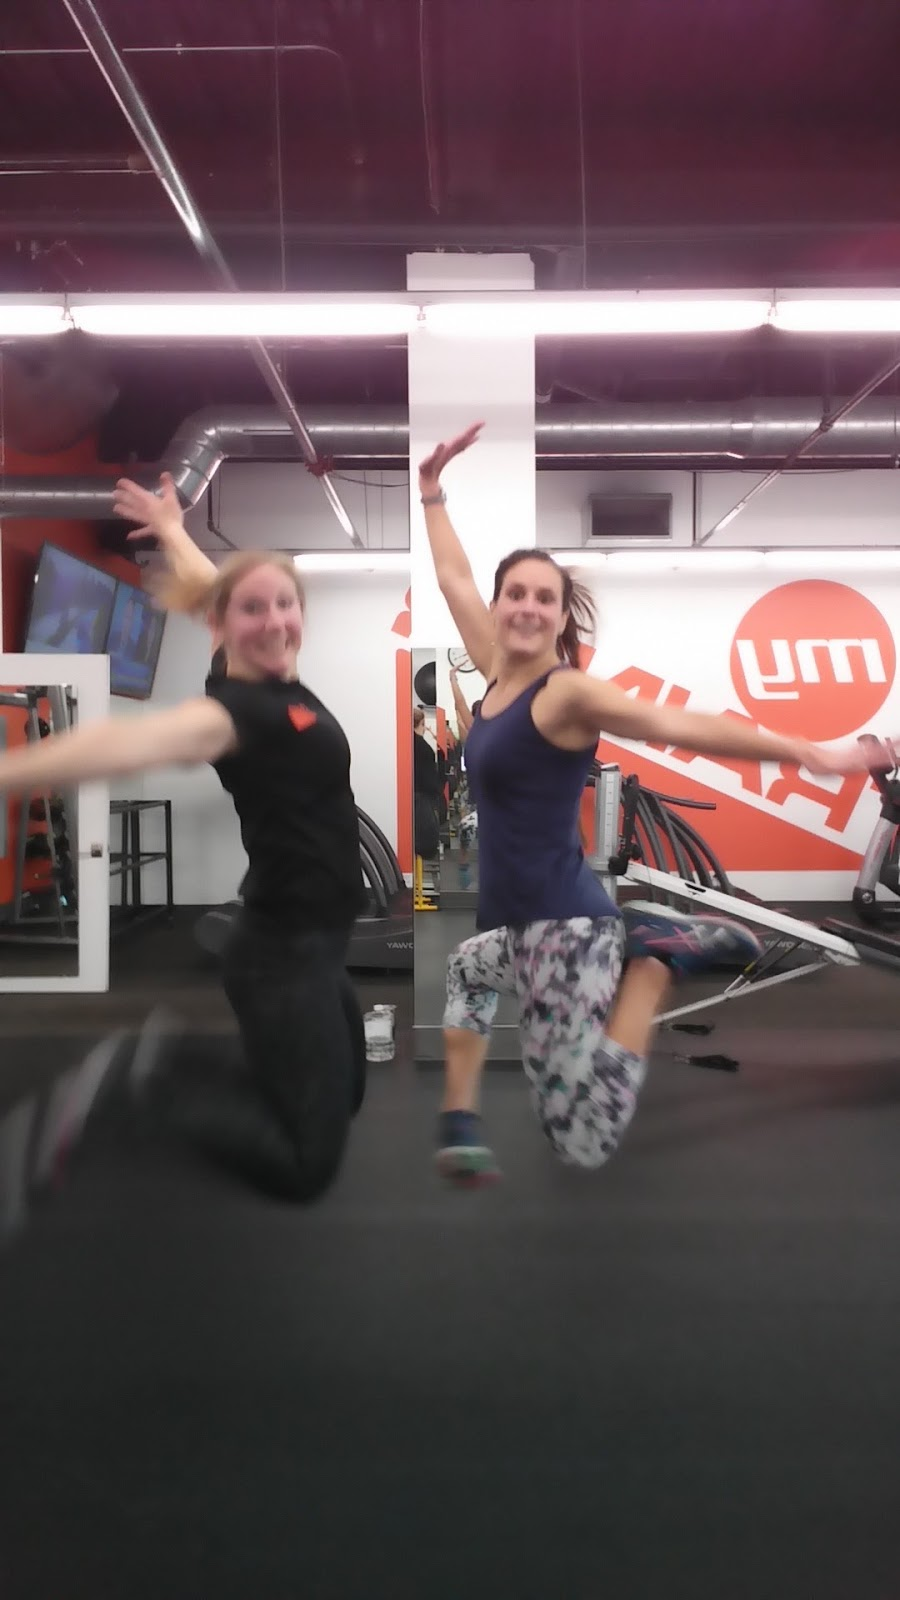 Revive Fitness - gym  | Photo 1 of 8 | Address: 2724 Dundee Rd #1, Northbrook, IL 60062, USA | Phone: (847) 780-4421